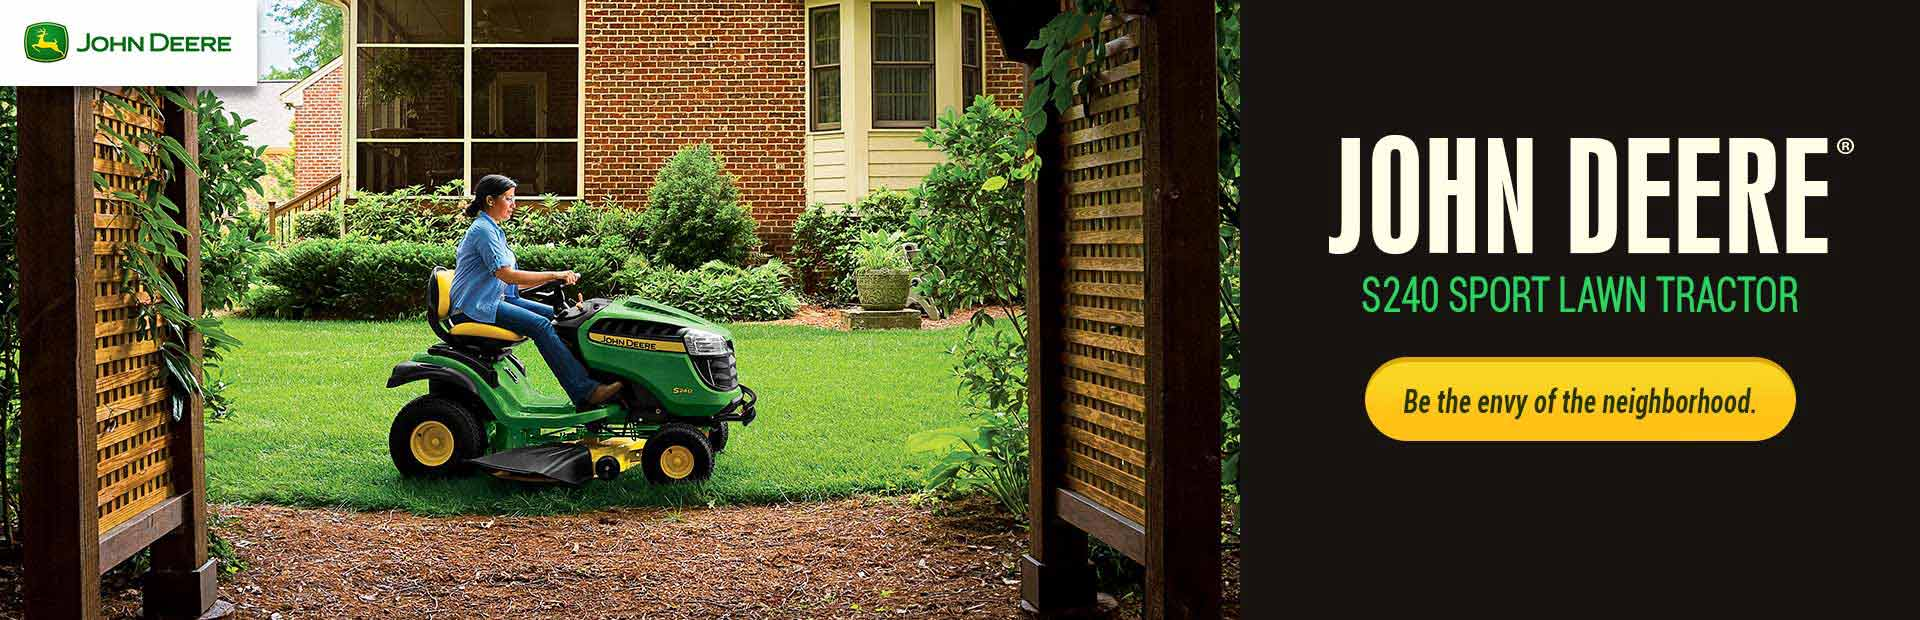 Be the envy of the neighborhood with the John Deere S240 sport lawn tractor! Click here for details.